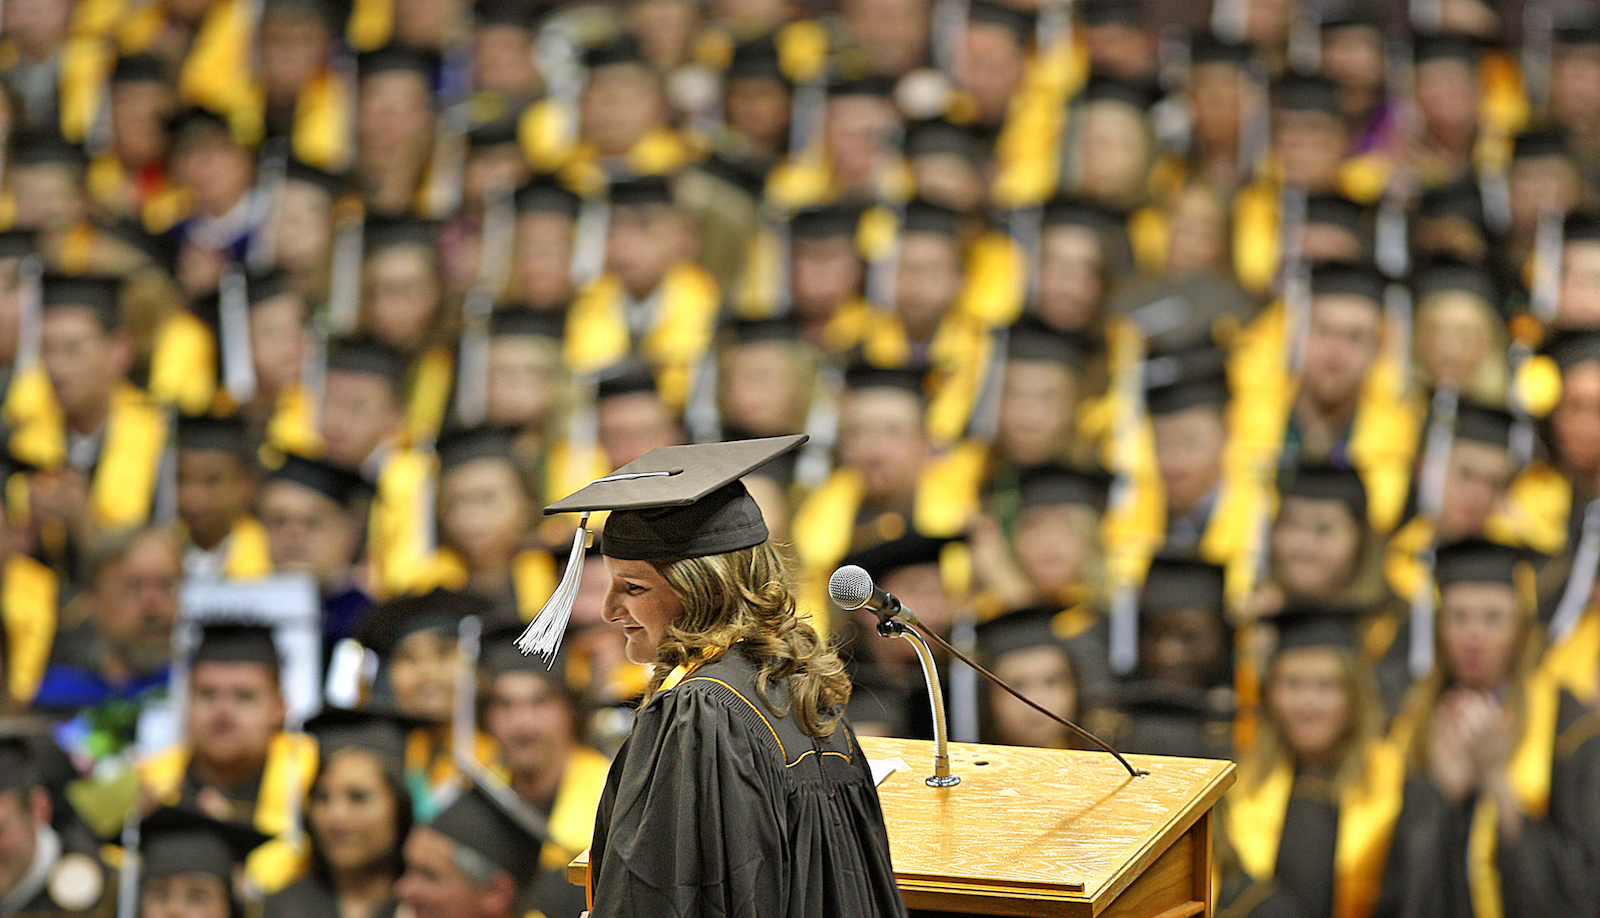 Kelsey Day, one of the 2009 College of Arts and Sciences outstanding graduates walks away from the podium after giving the A&S Commencement speech in the Arena-Auditorium in Laramie, Wyo. on Saturday, May 9, 2009.  (AP Photo/Laramie Boomerang, Ben Woloszyn)